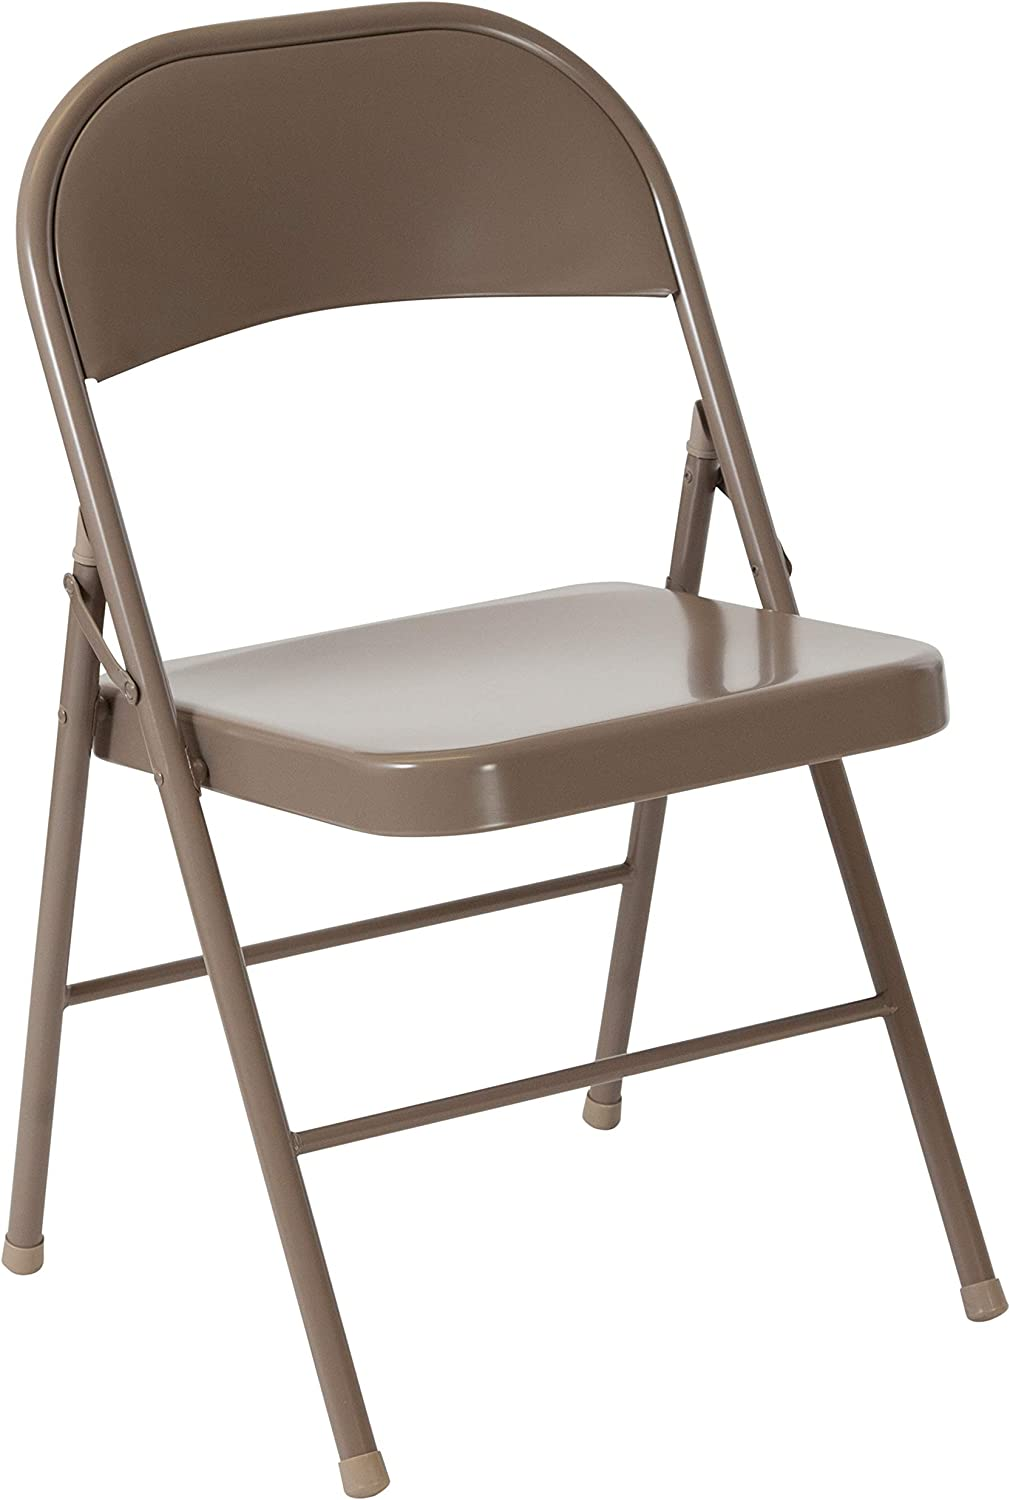 Flash Furniture HERCULES Series Double Braced Beige Metal Folding Chair